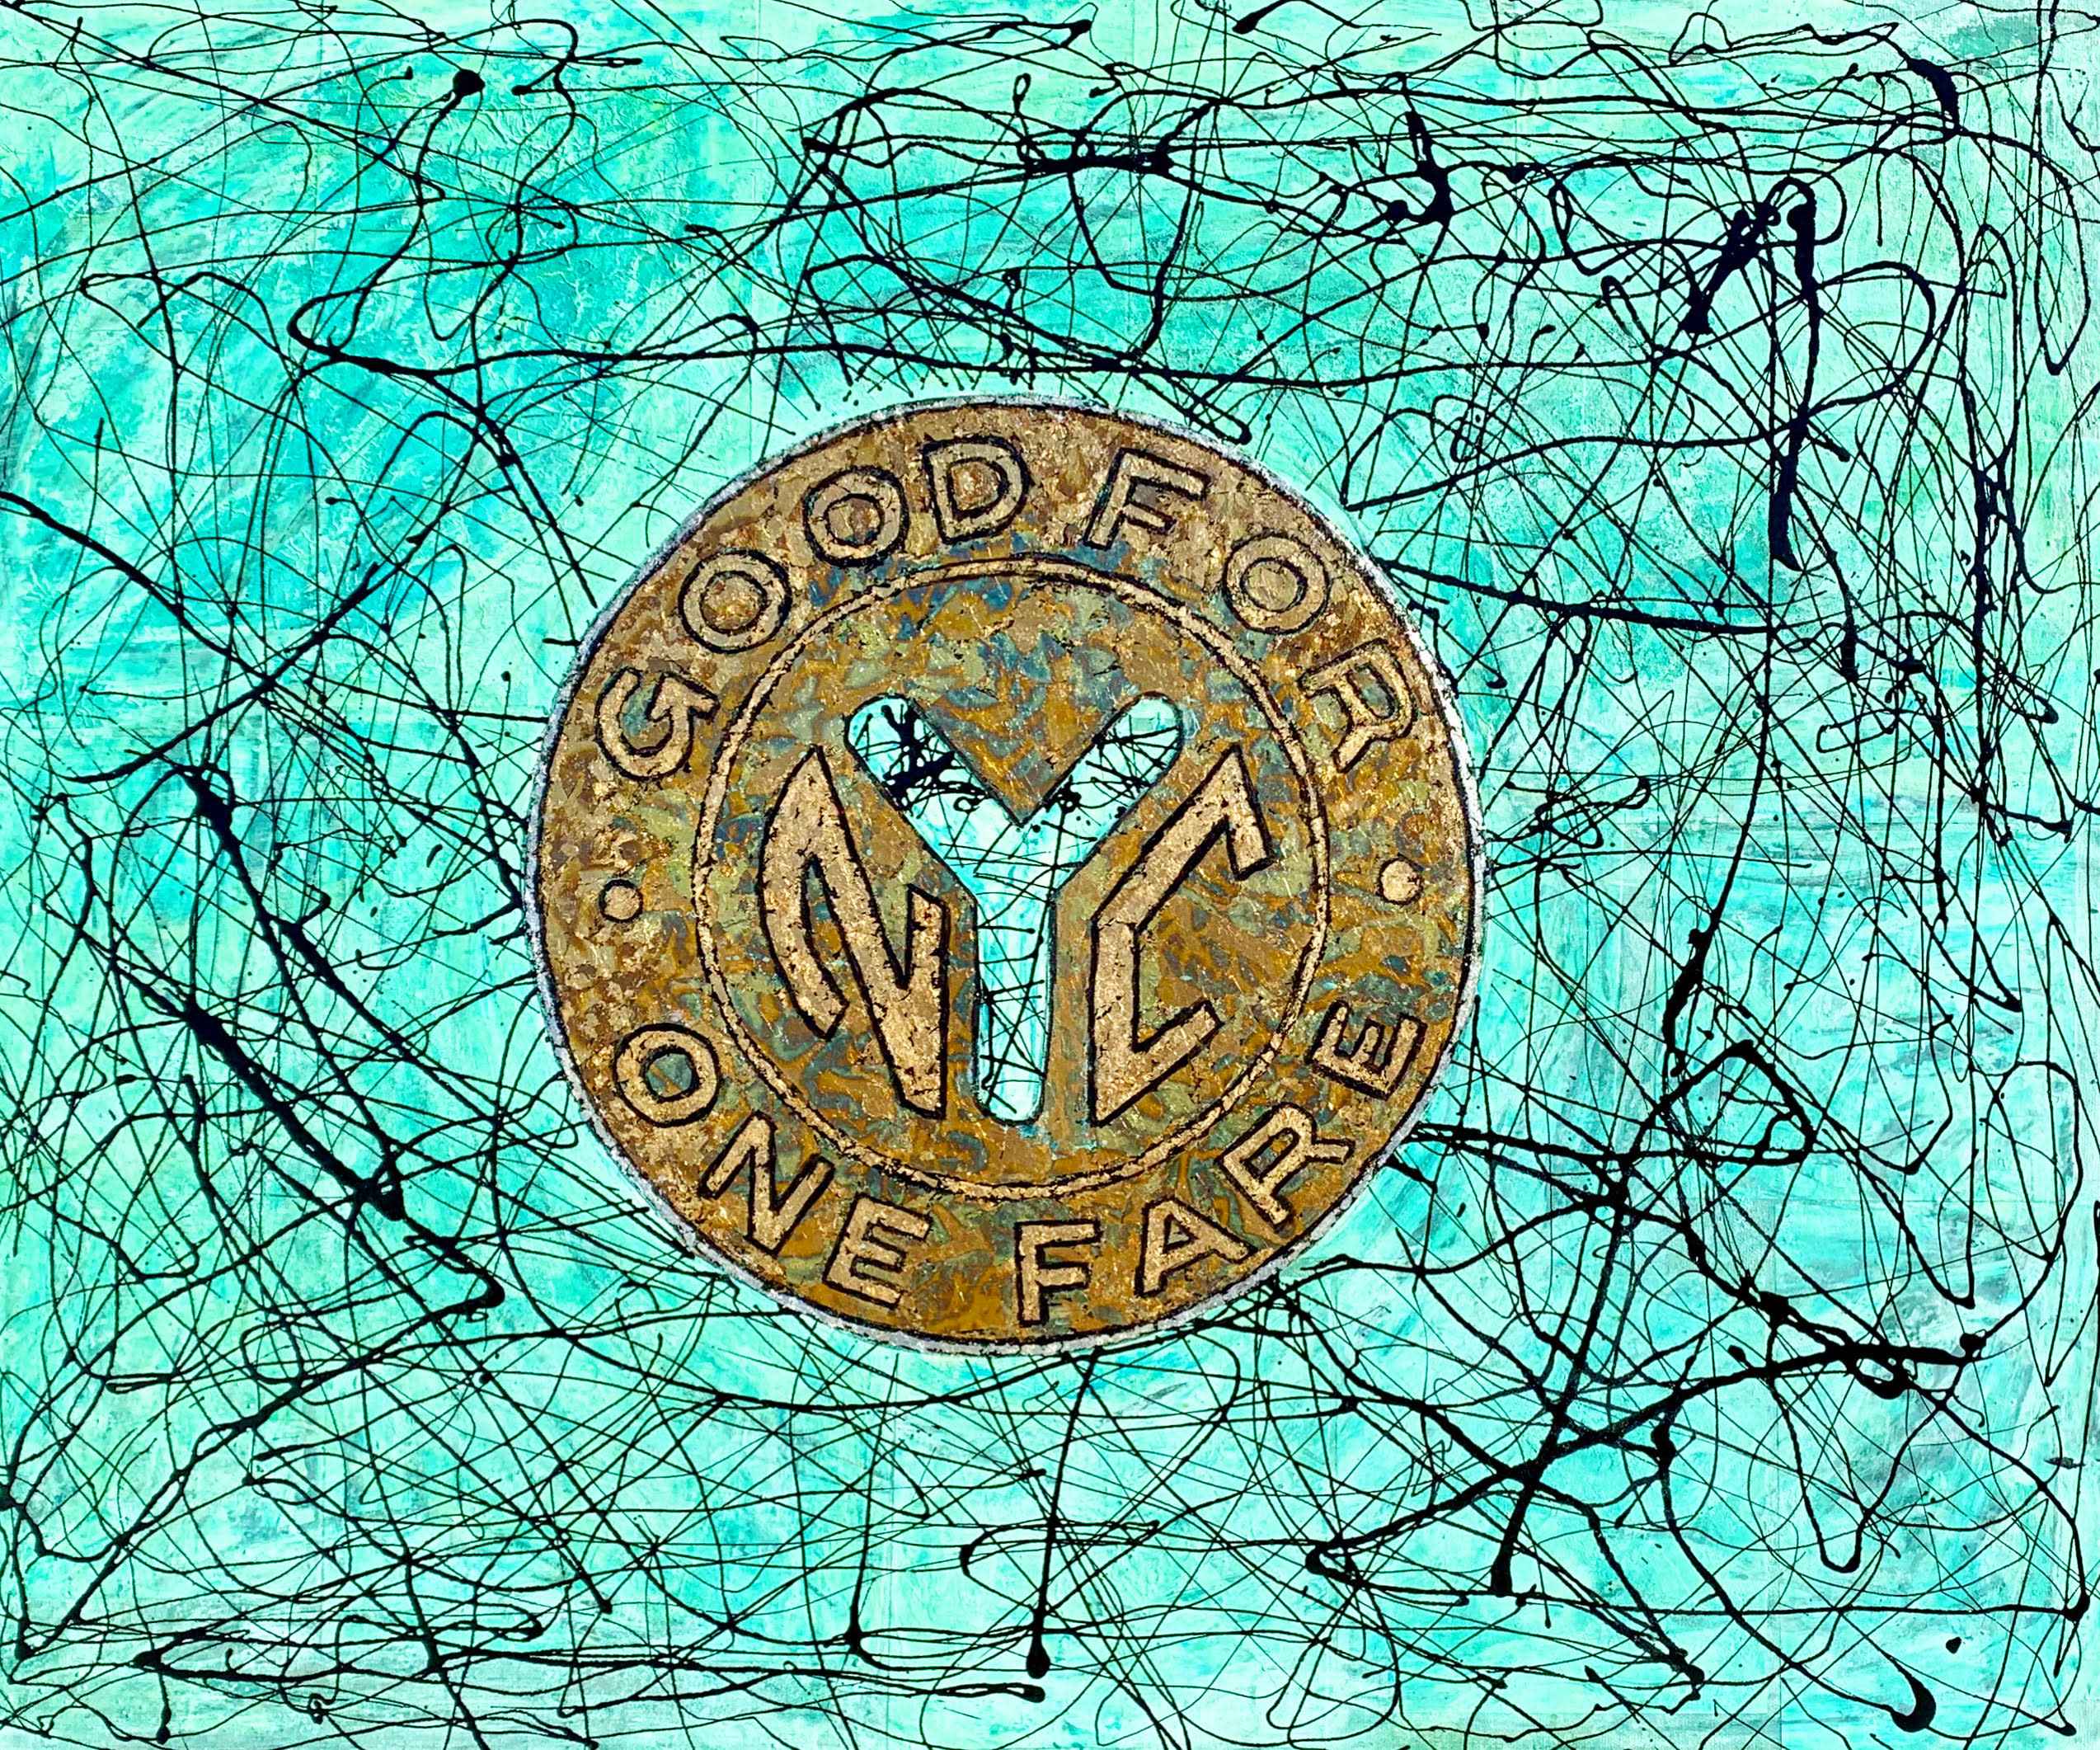 Patina abstract expressionist vintage nyc subway token painting artist paul zepeda mjcjkx